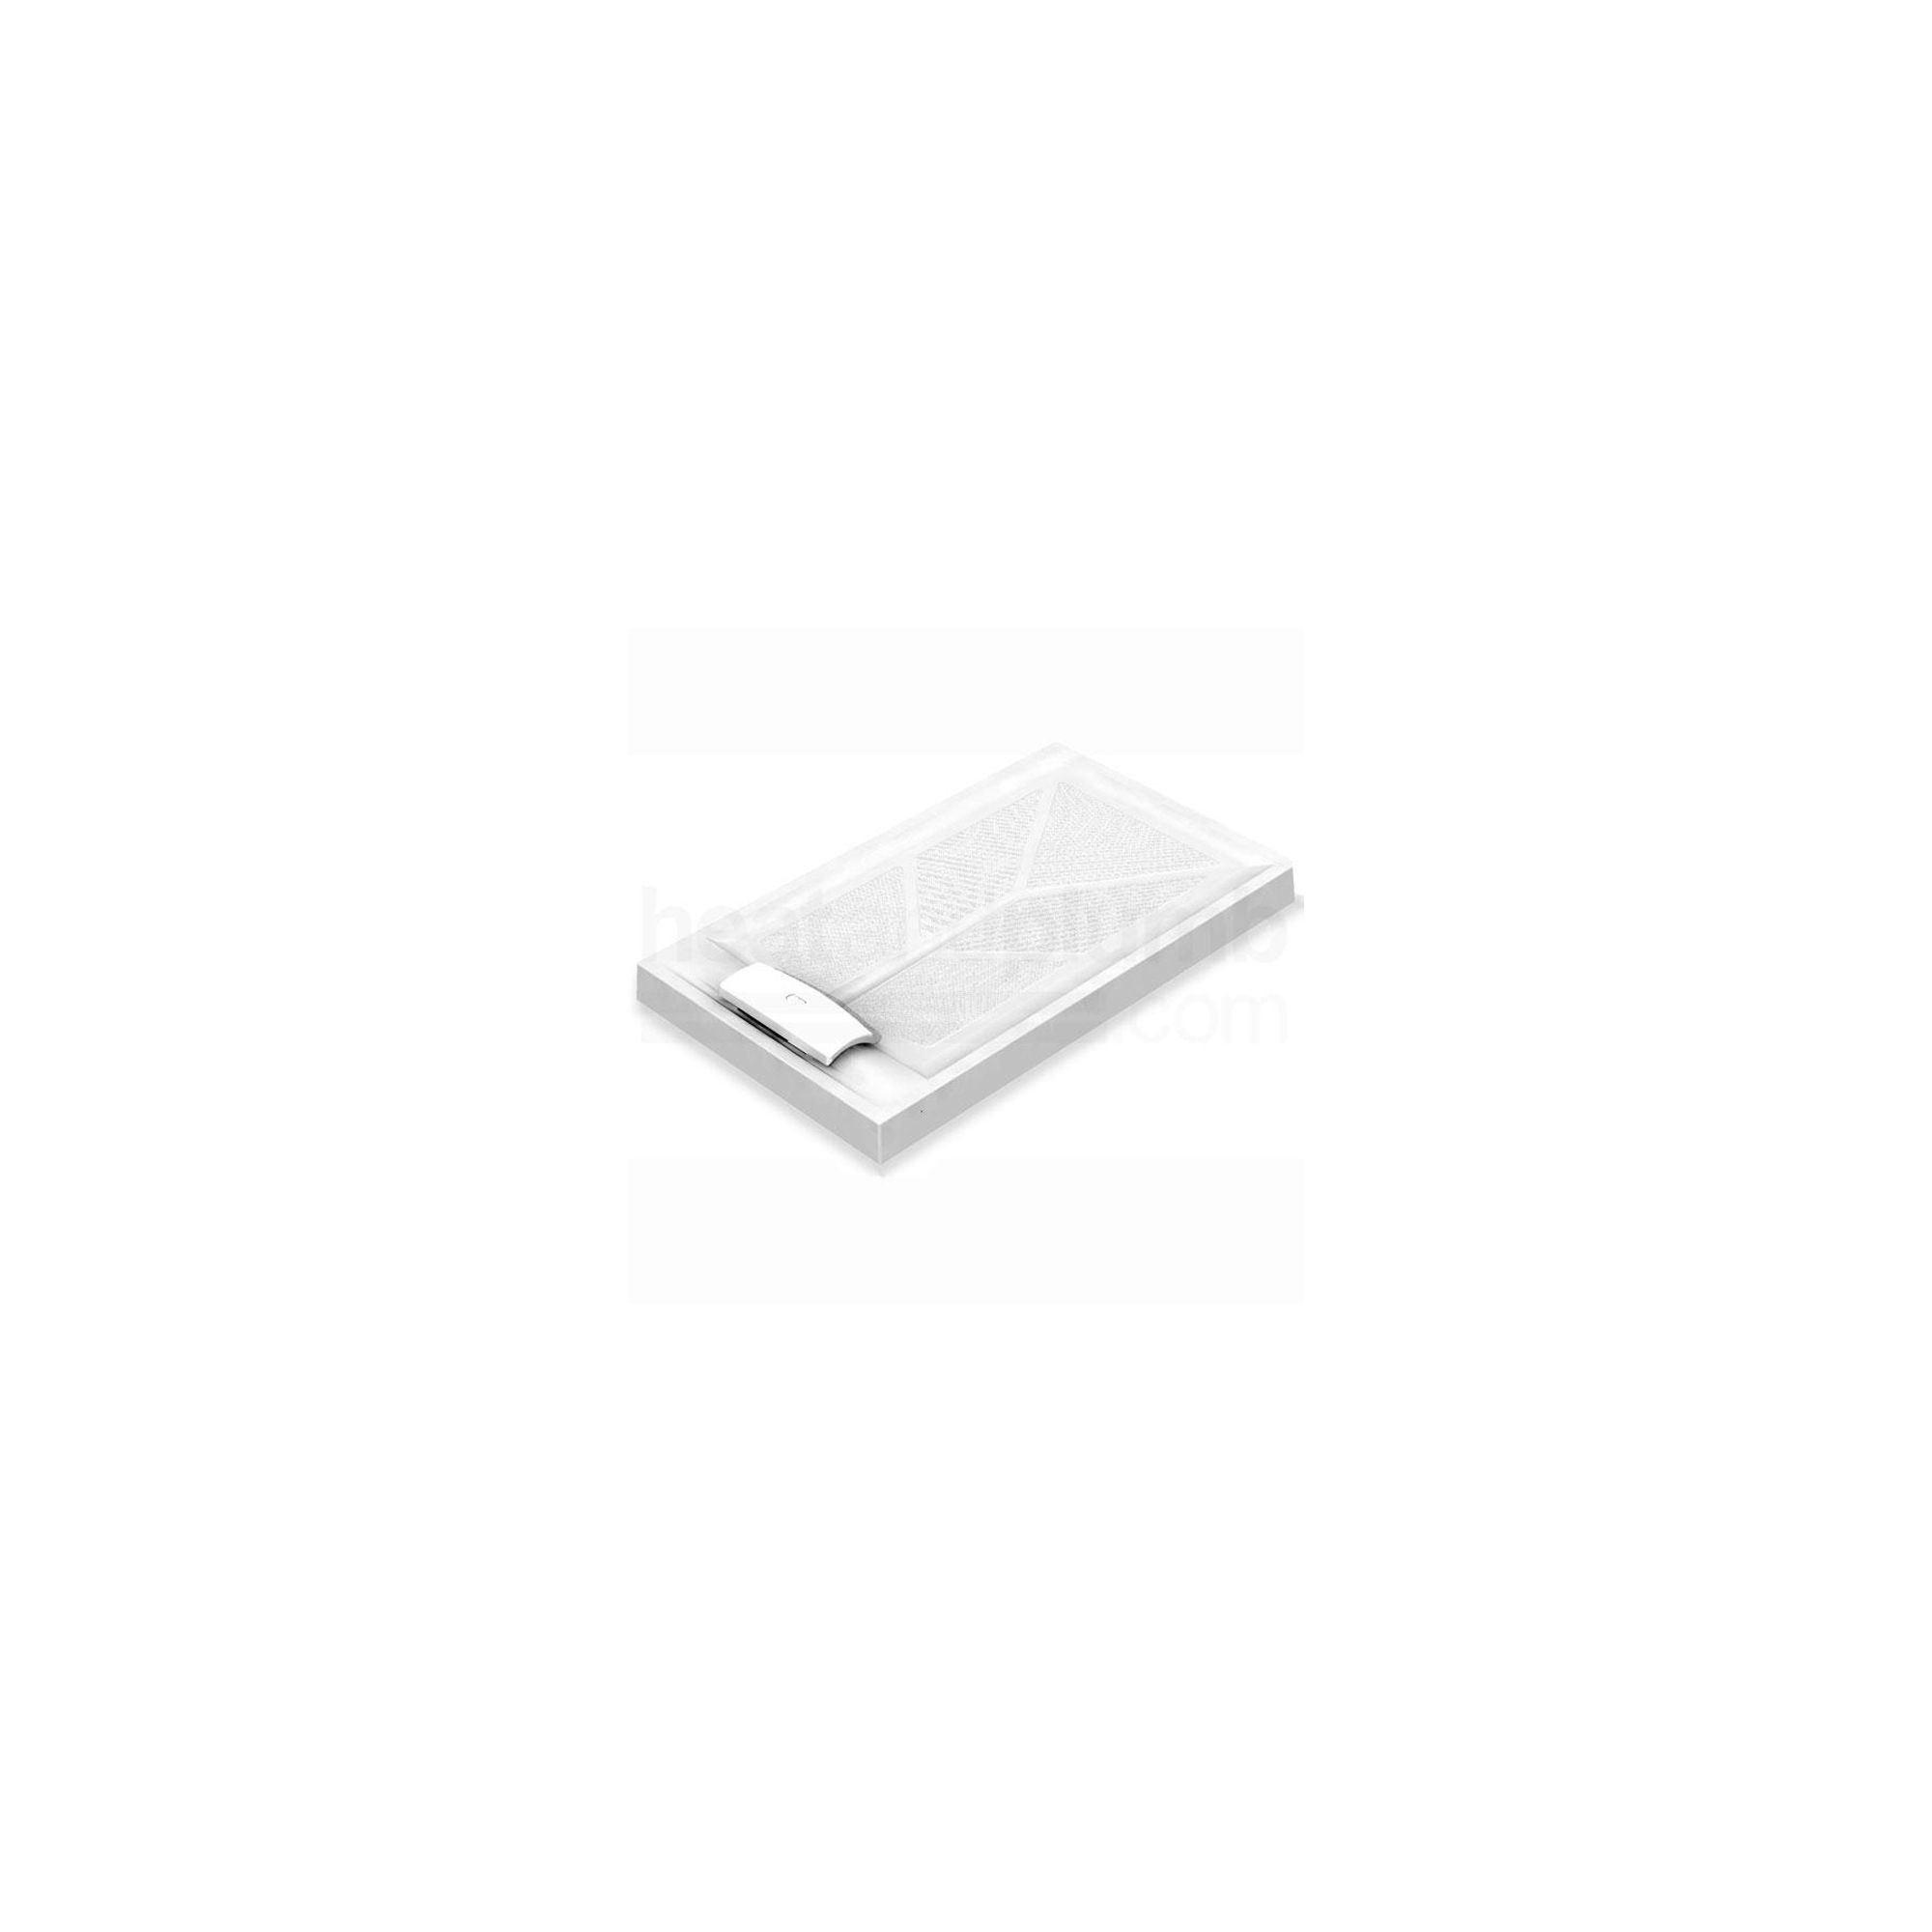 AKW Sulby Rectangular Shower Tray 1300mm x 700mm at Tesco Direct